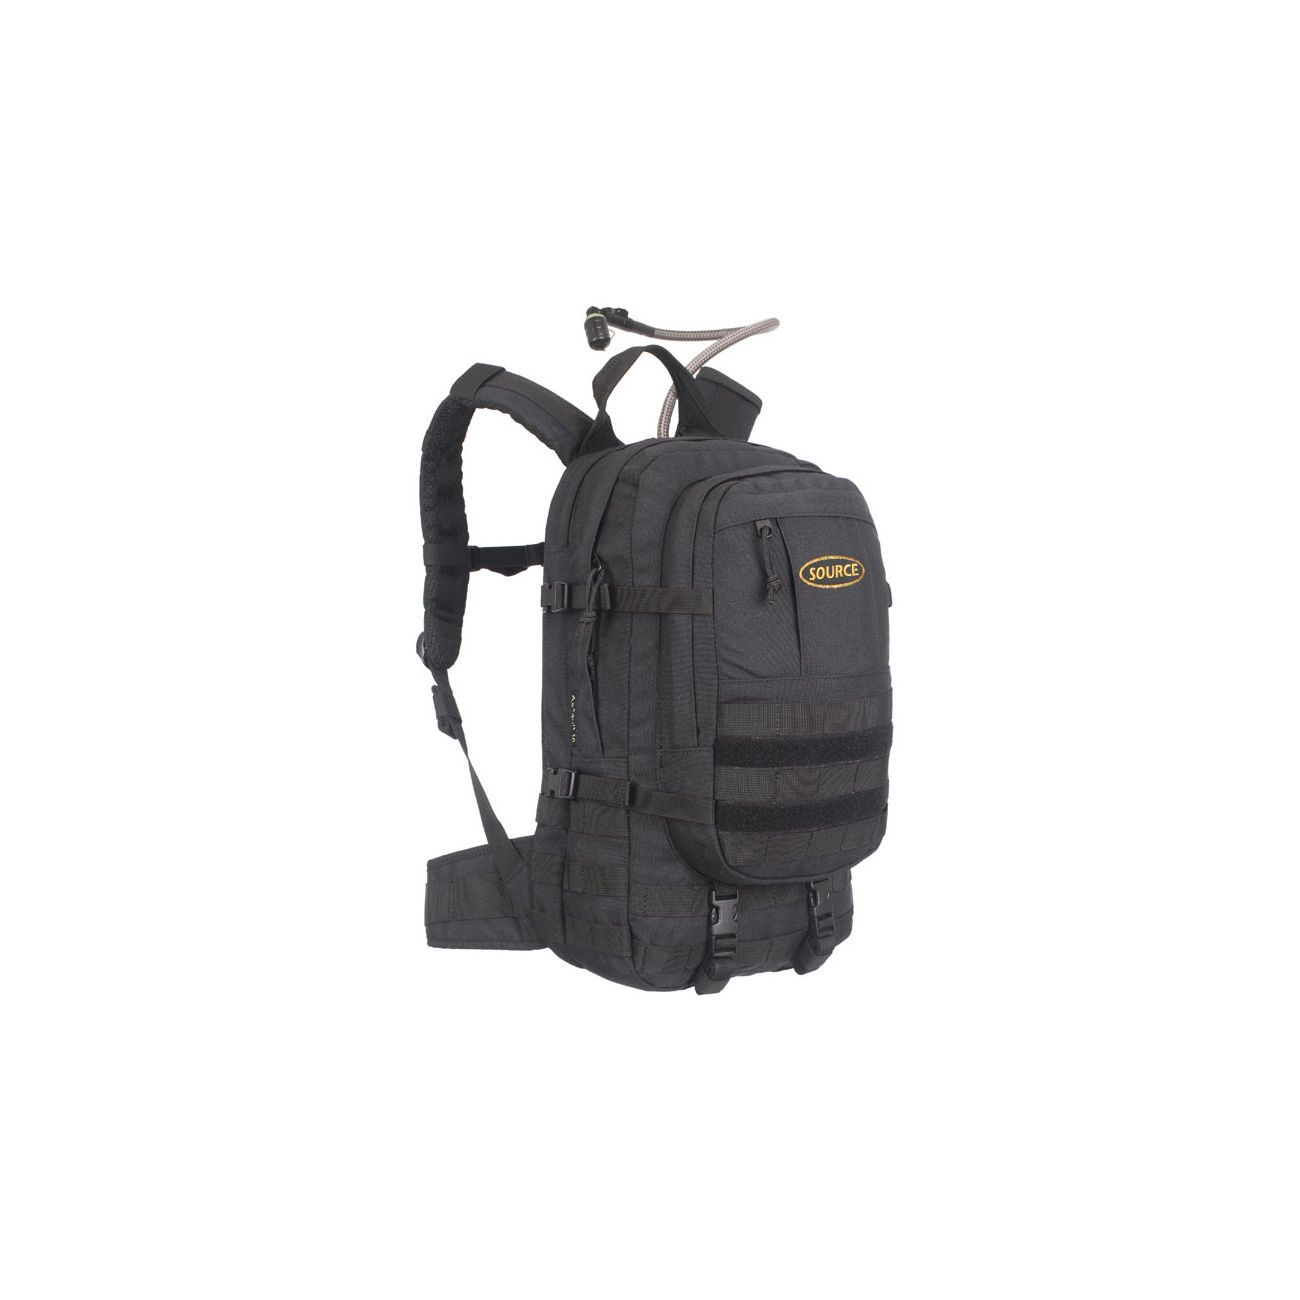 Source Tactical Gear Trink- und Rucksacksystem Assault 20L schwarz 0